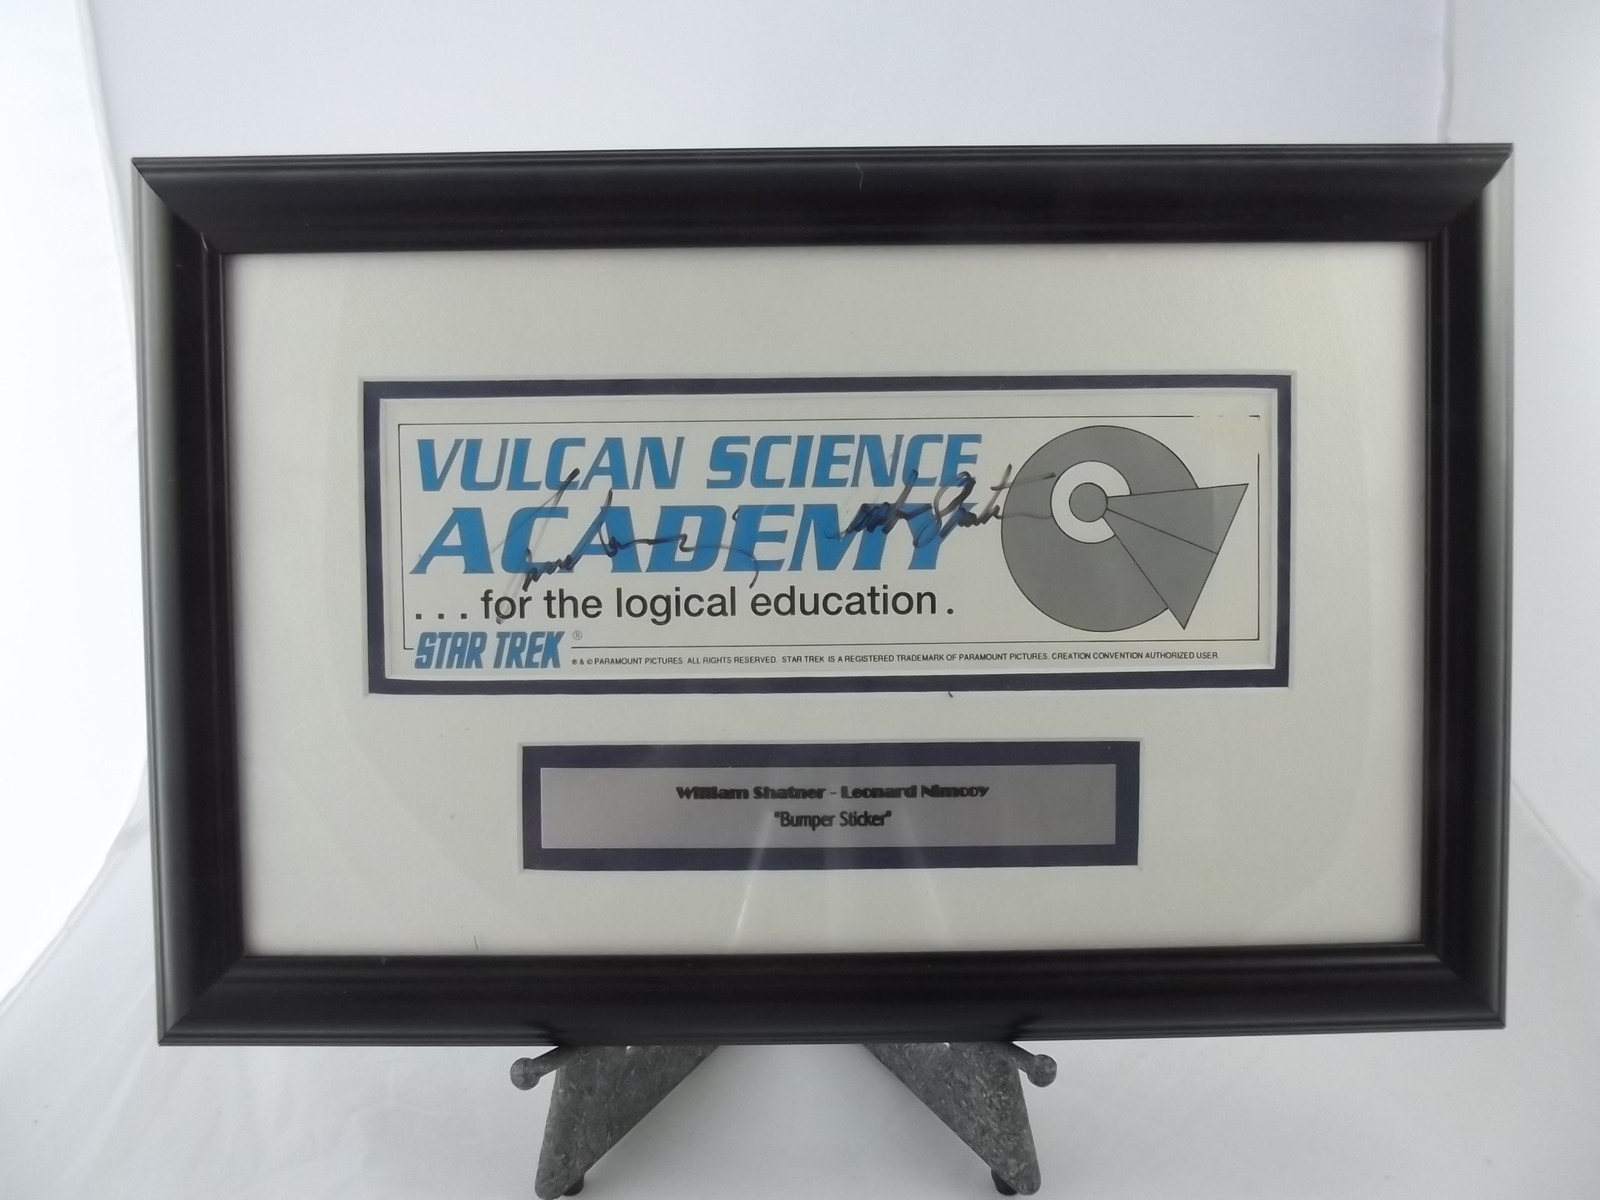 The Vulcan Science Academy